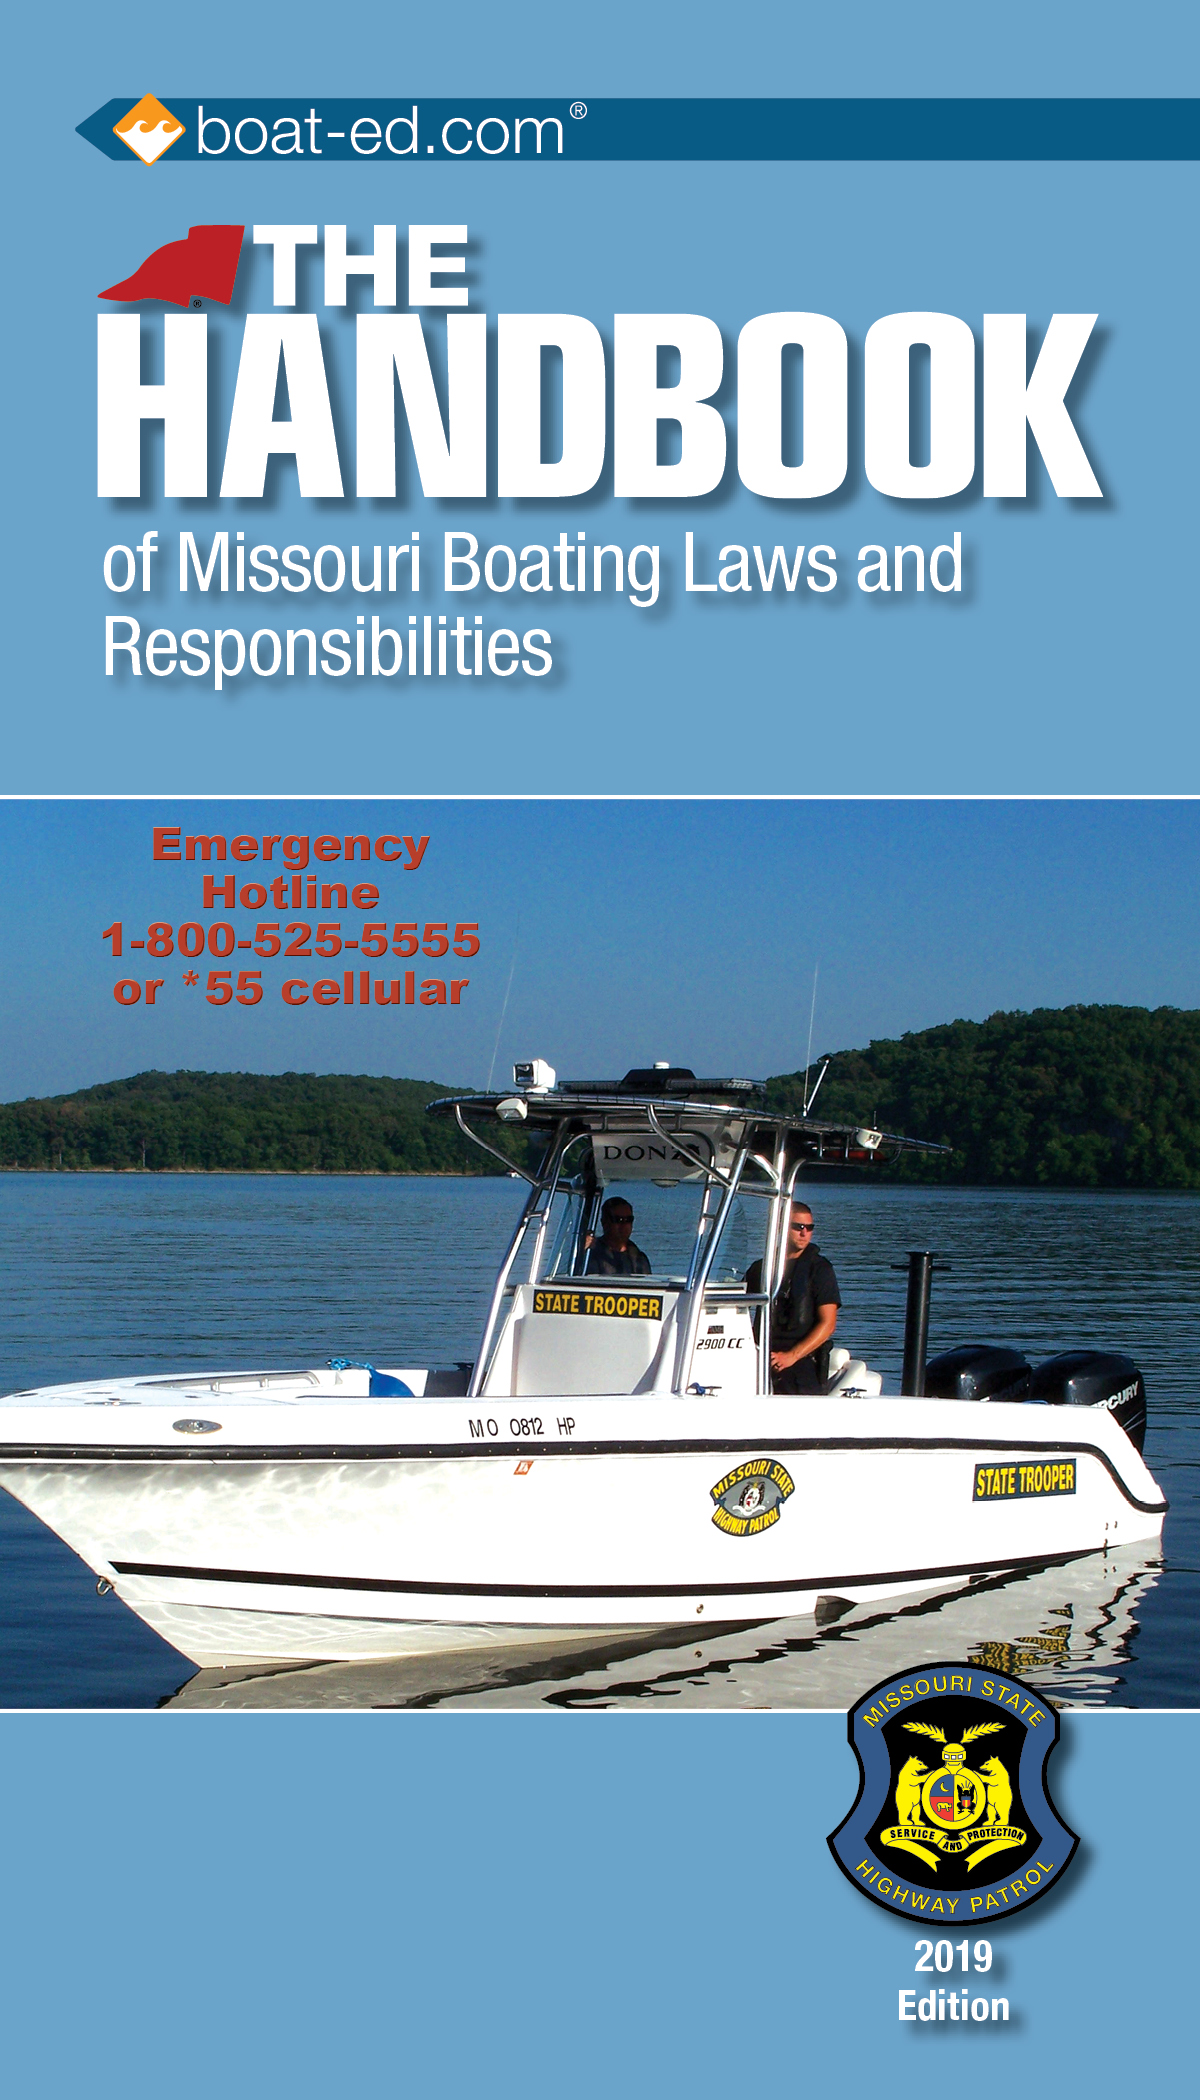 Missouri Boating handbook